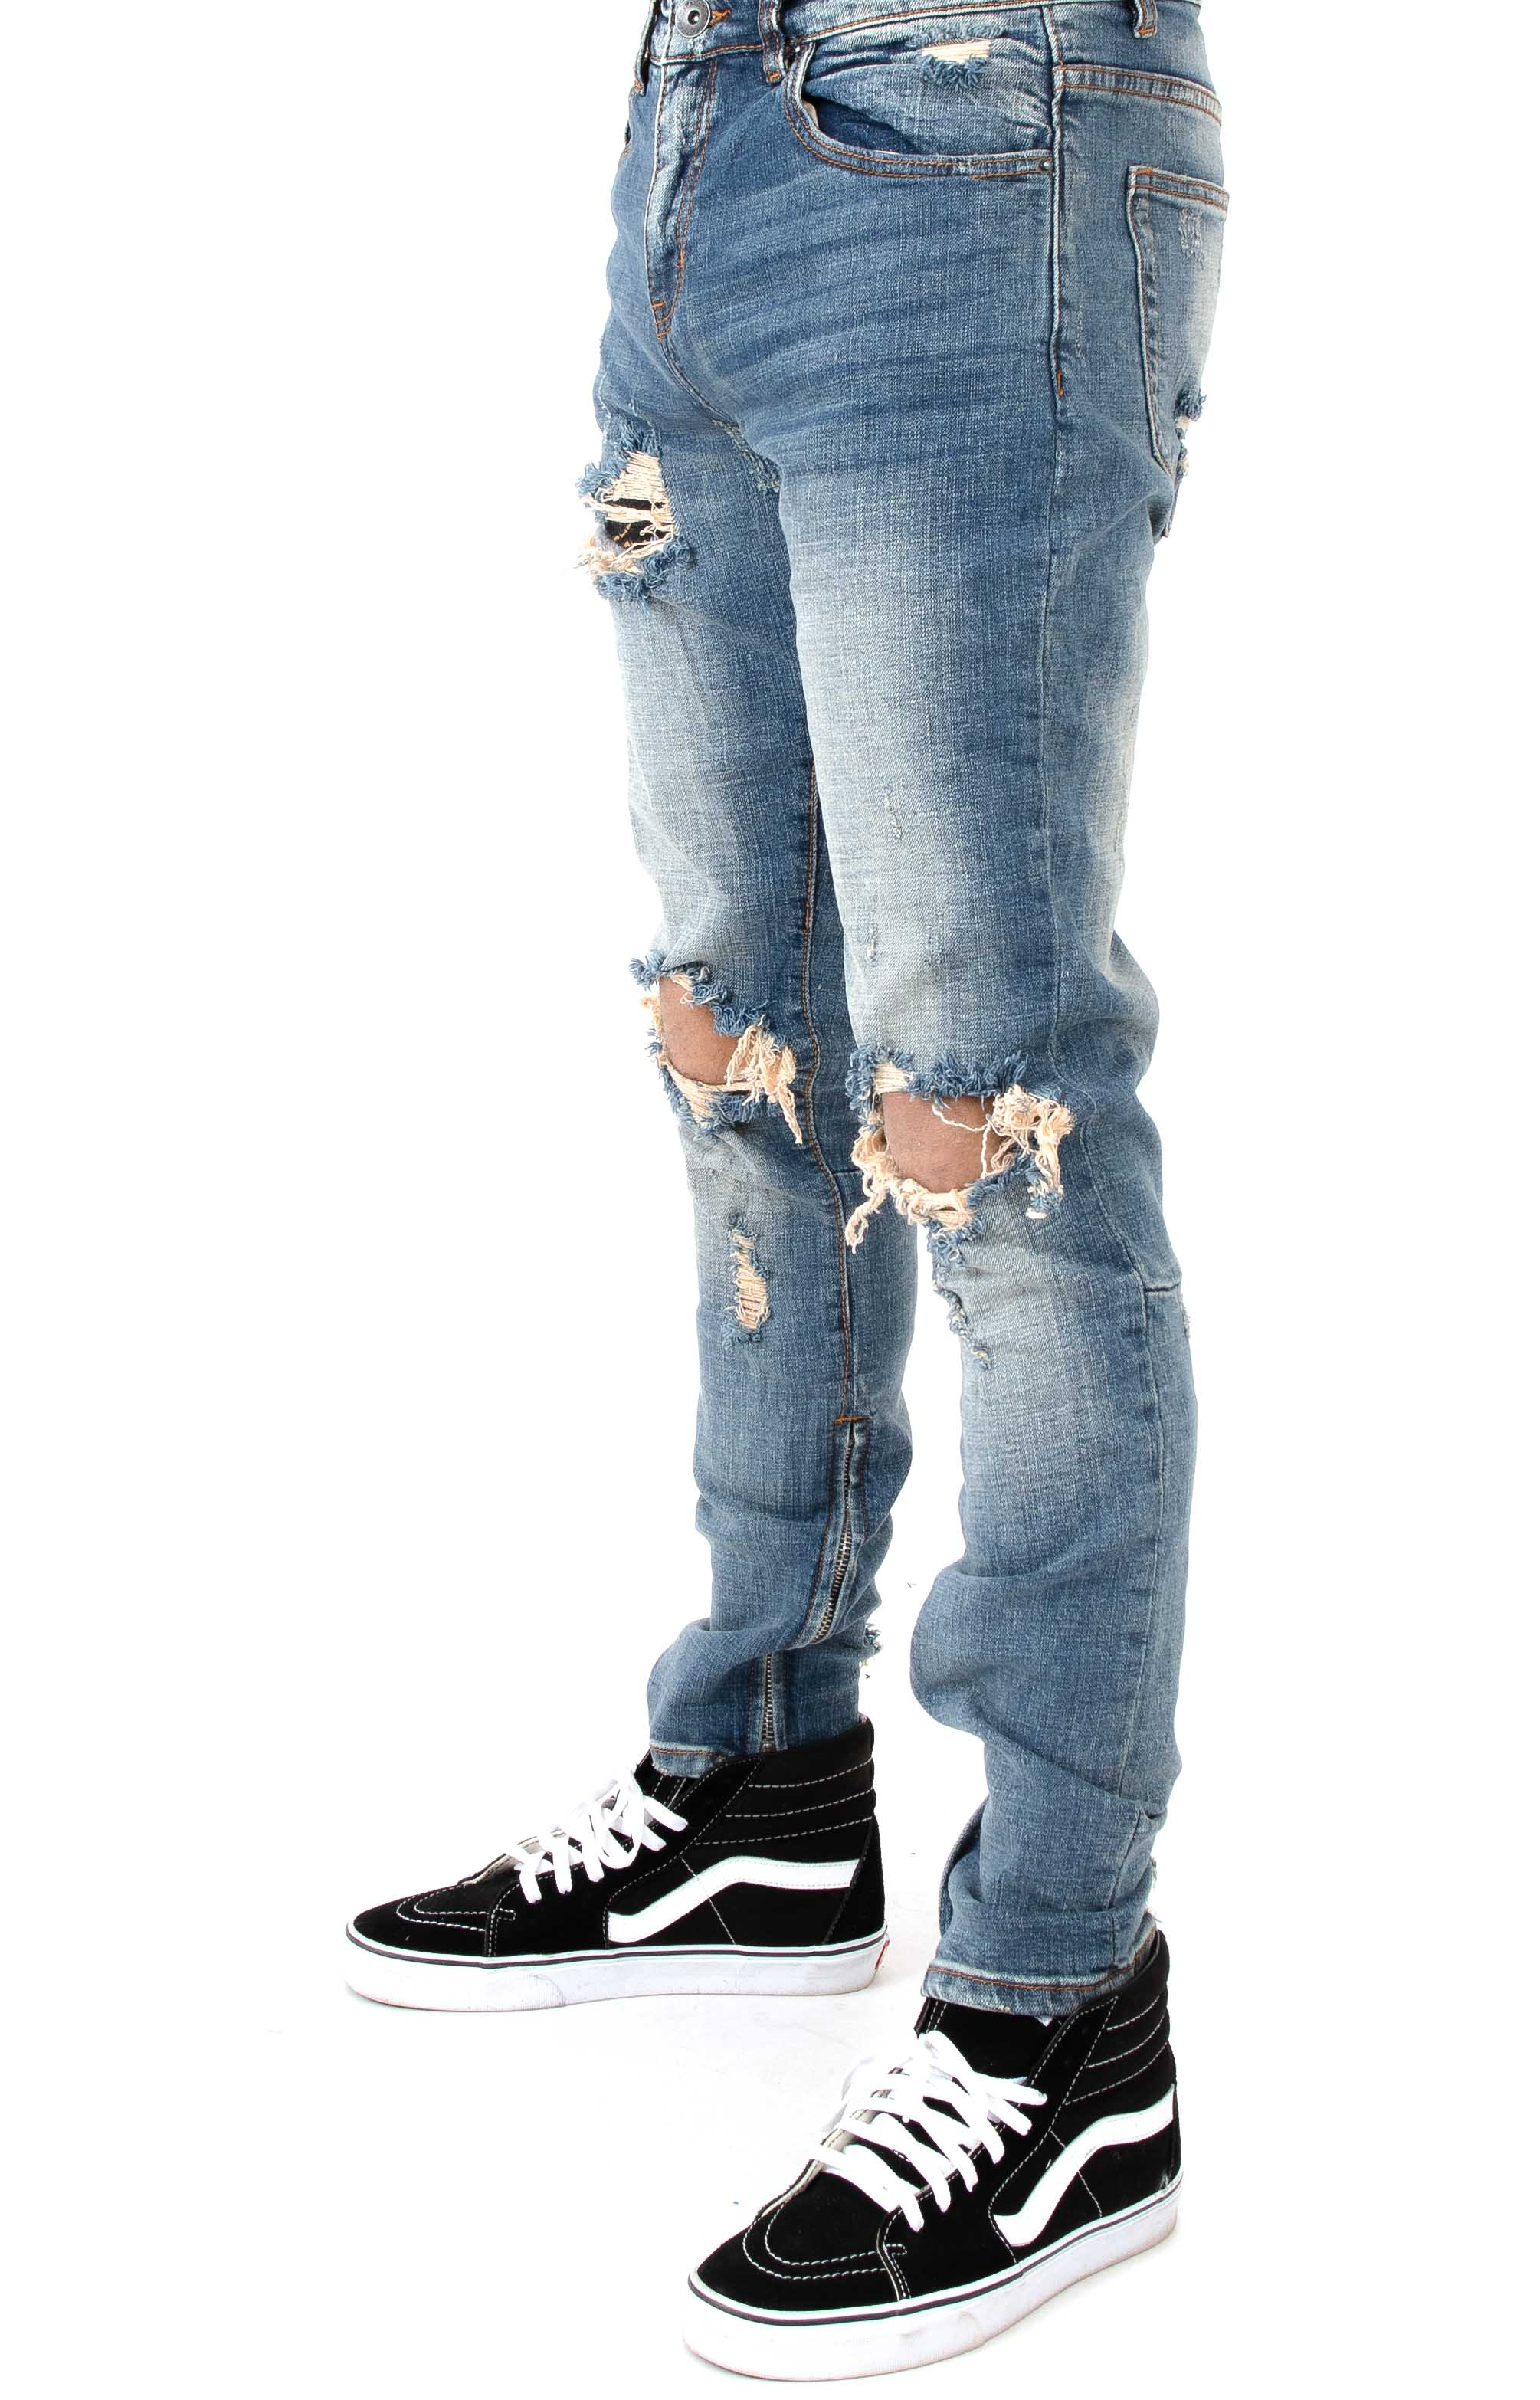 (CRYSU118-PAC04) Pacific Denim Jeans - Stone Wash